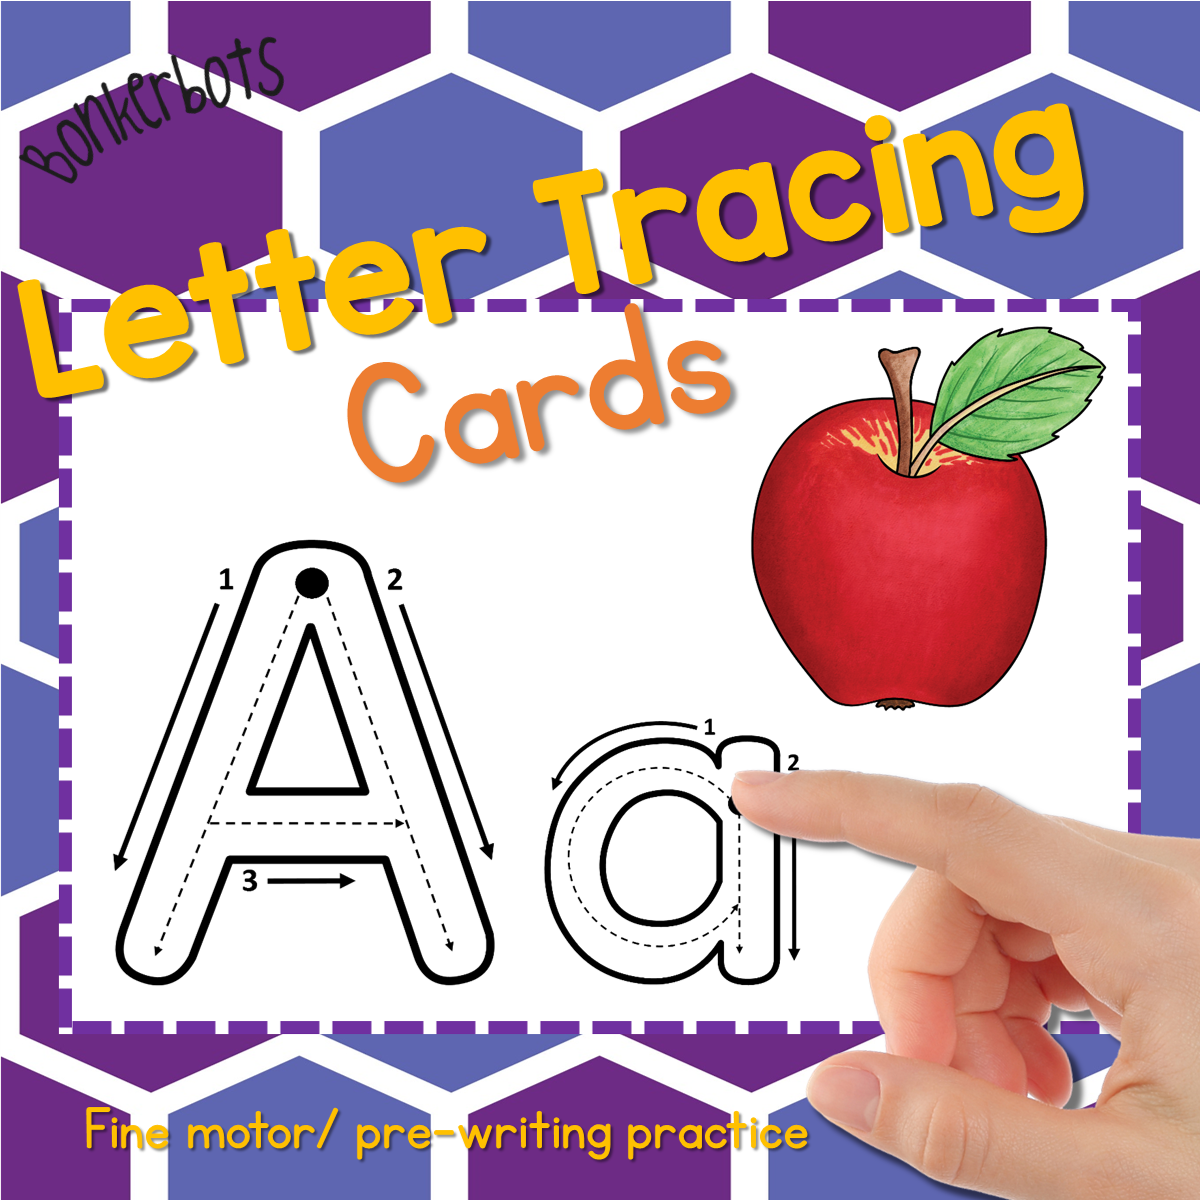 Letter Tracing Cards - Bonkerbots